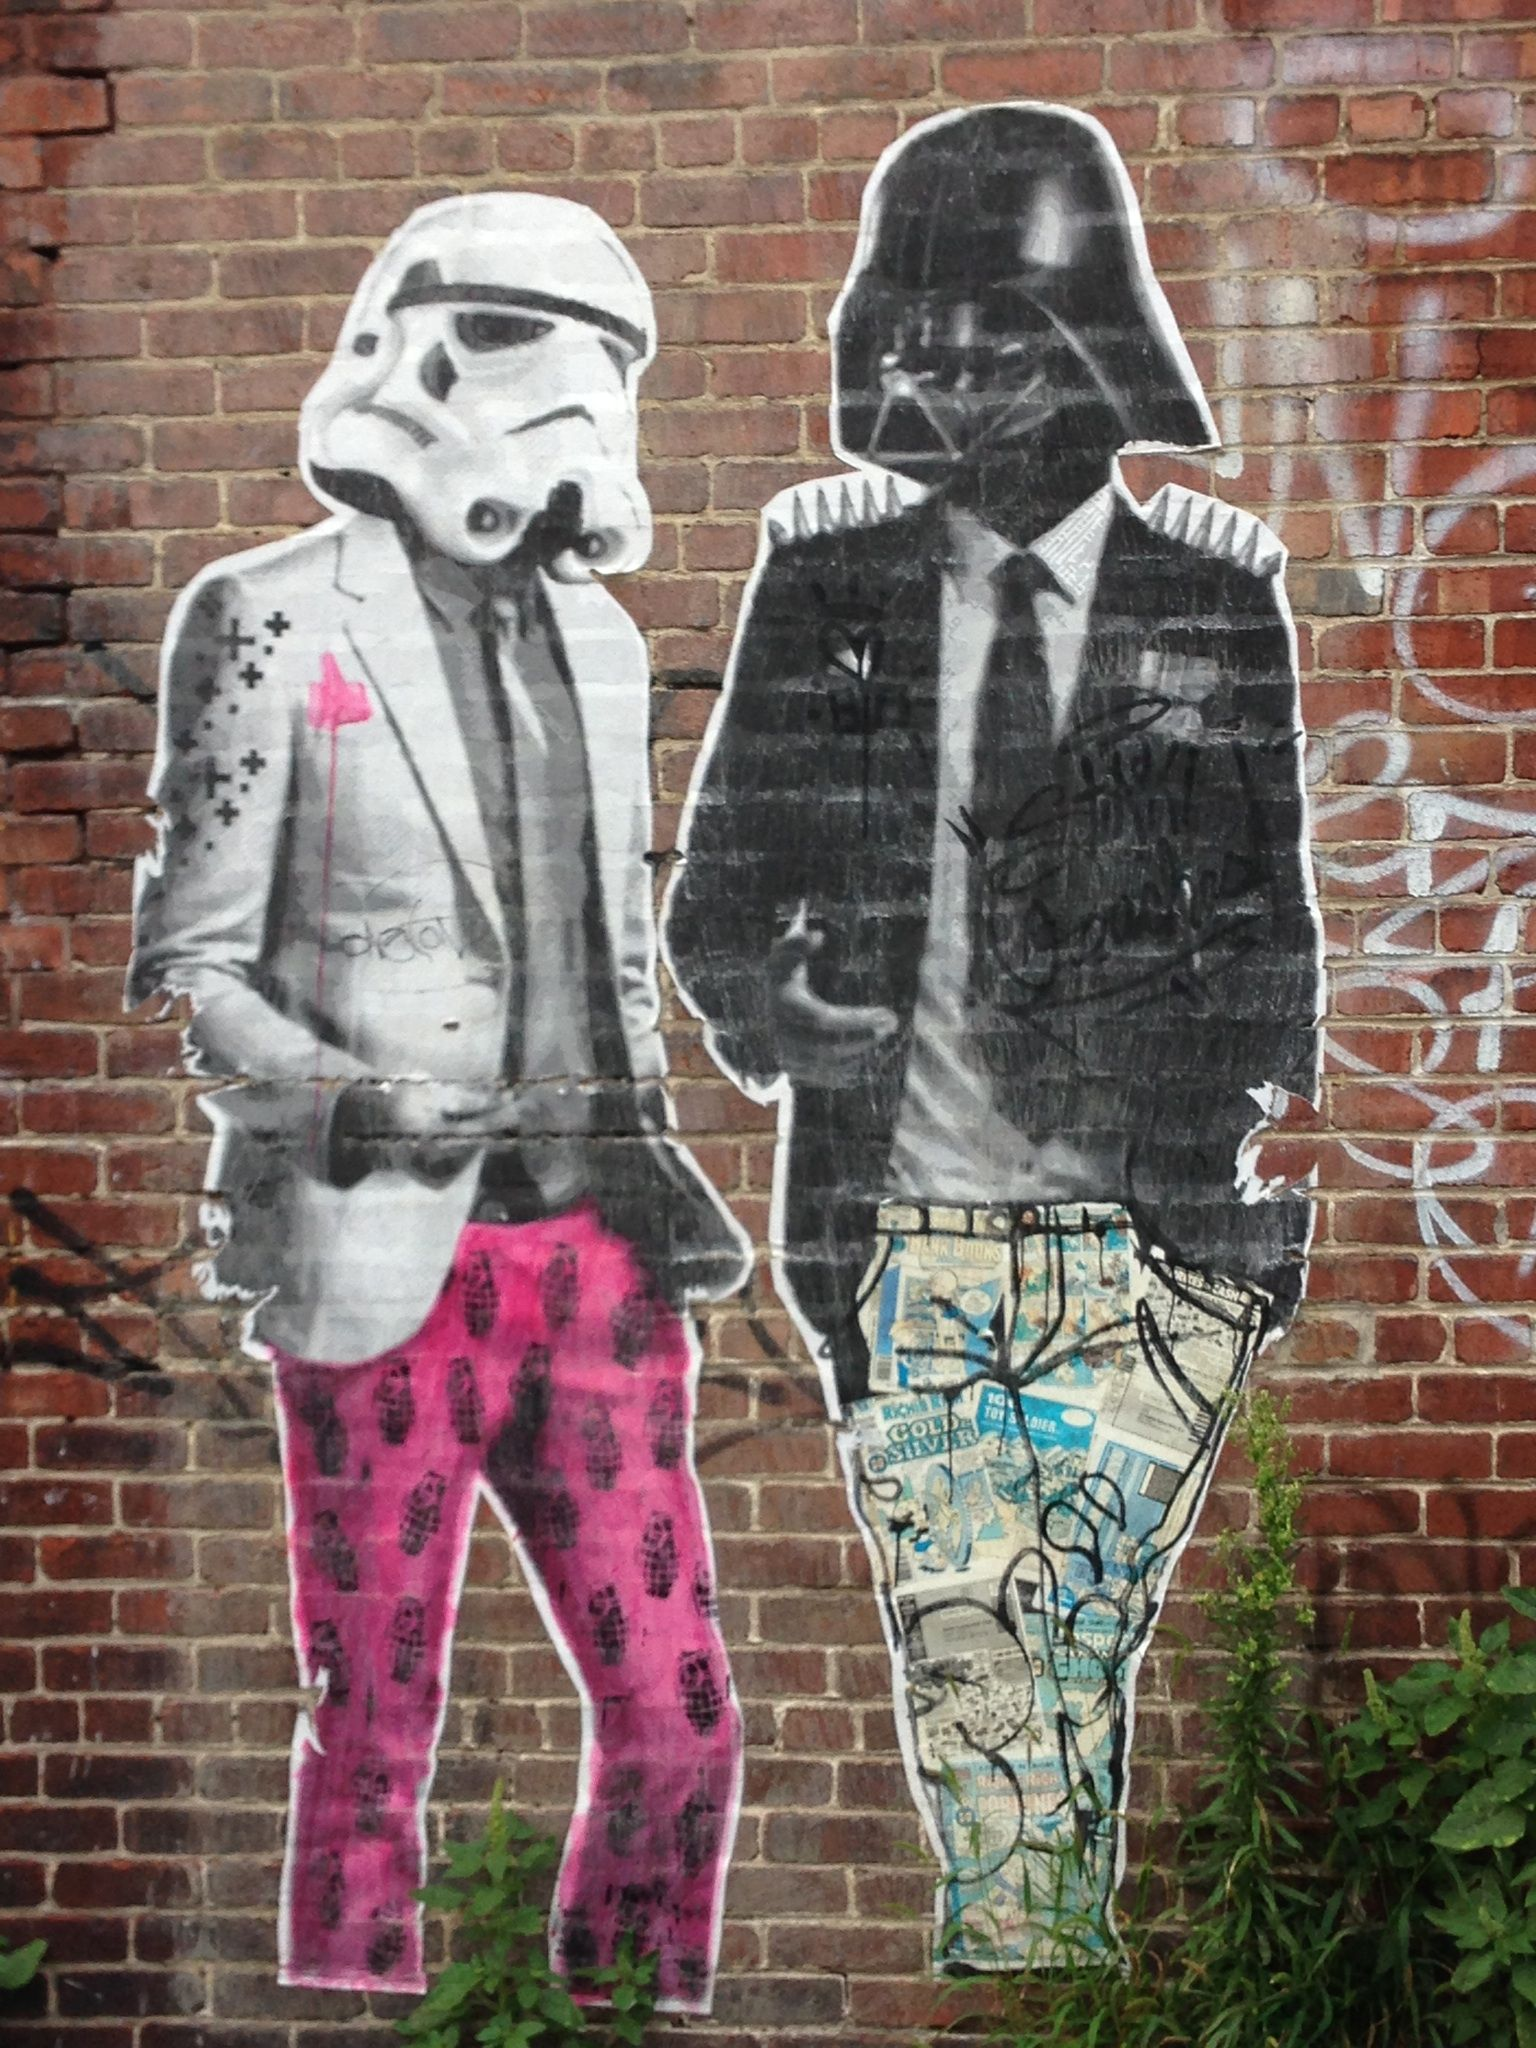 Hipster Darth Vader Street Art Banksy And Other Street Artists - People cant decide if theyre ok with this street artists ironic messages